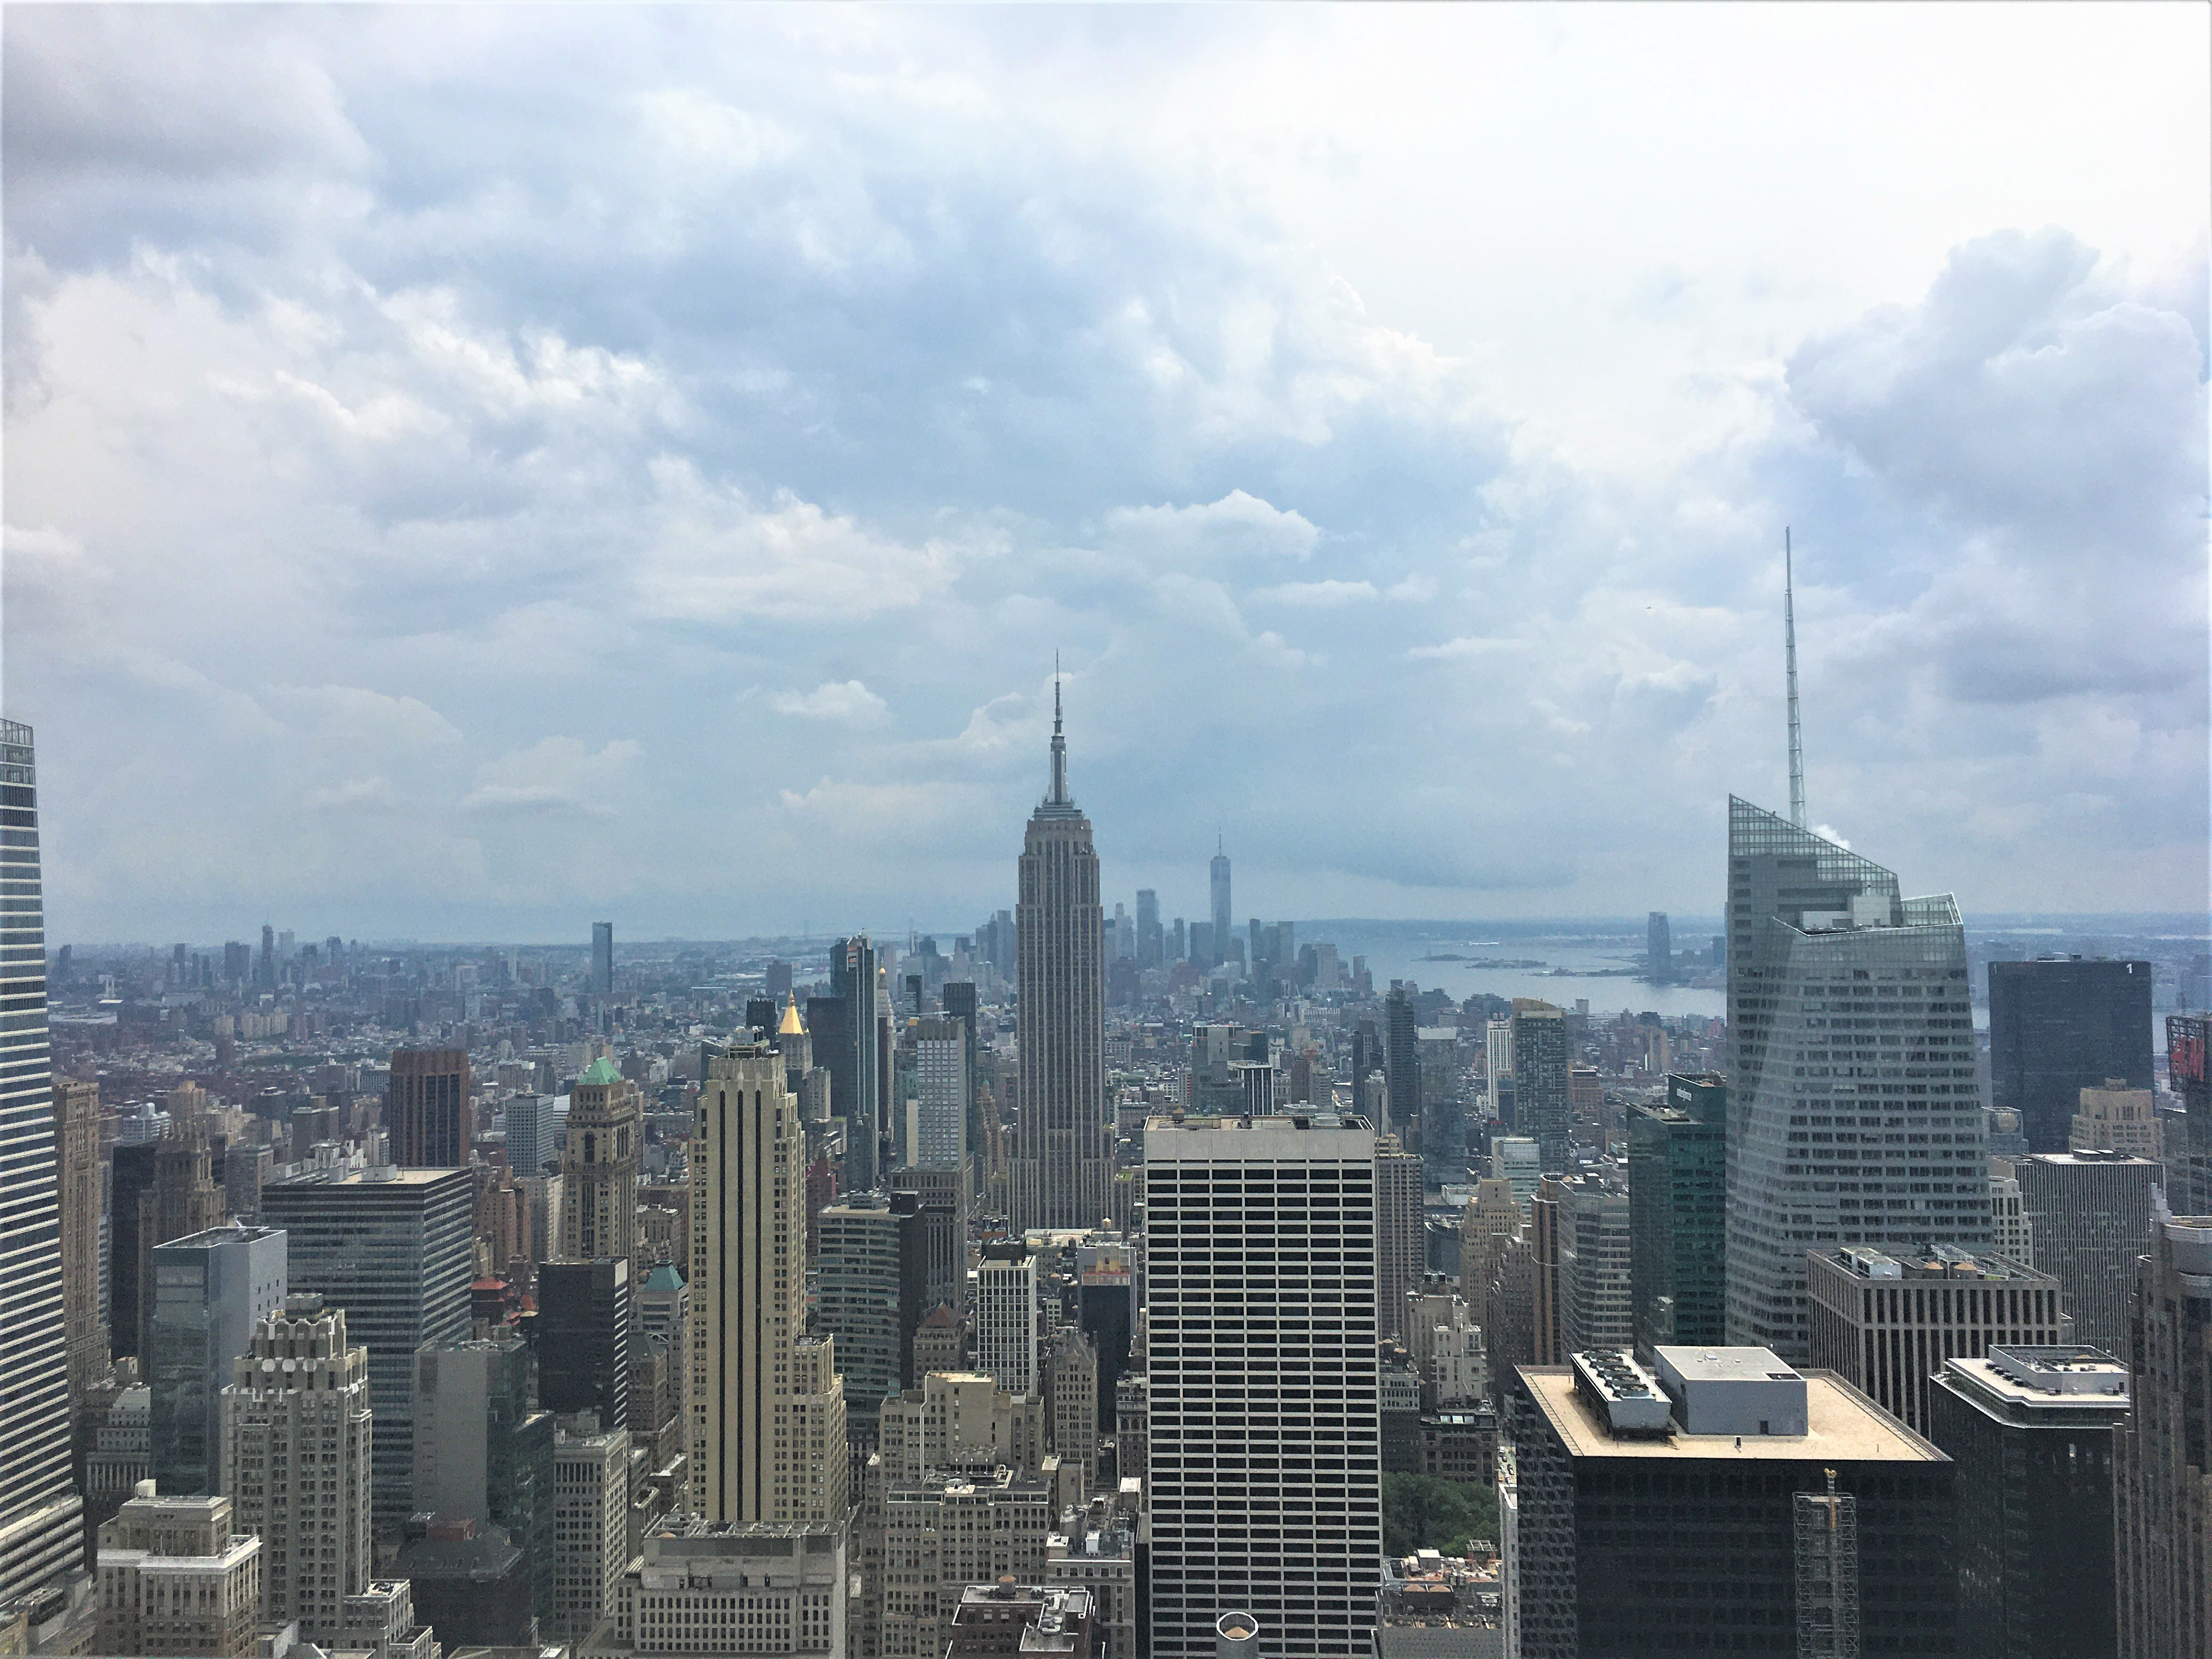 Top of the Rock - Empire State